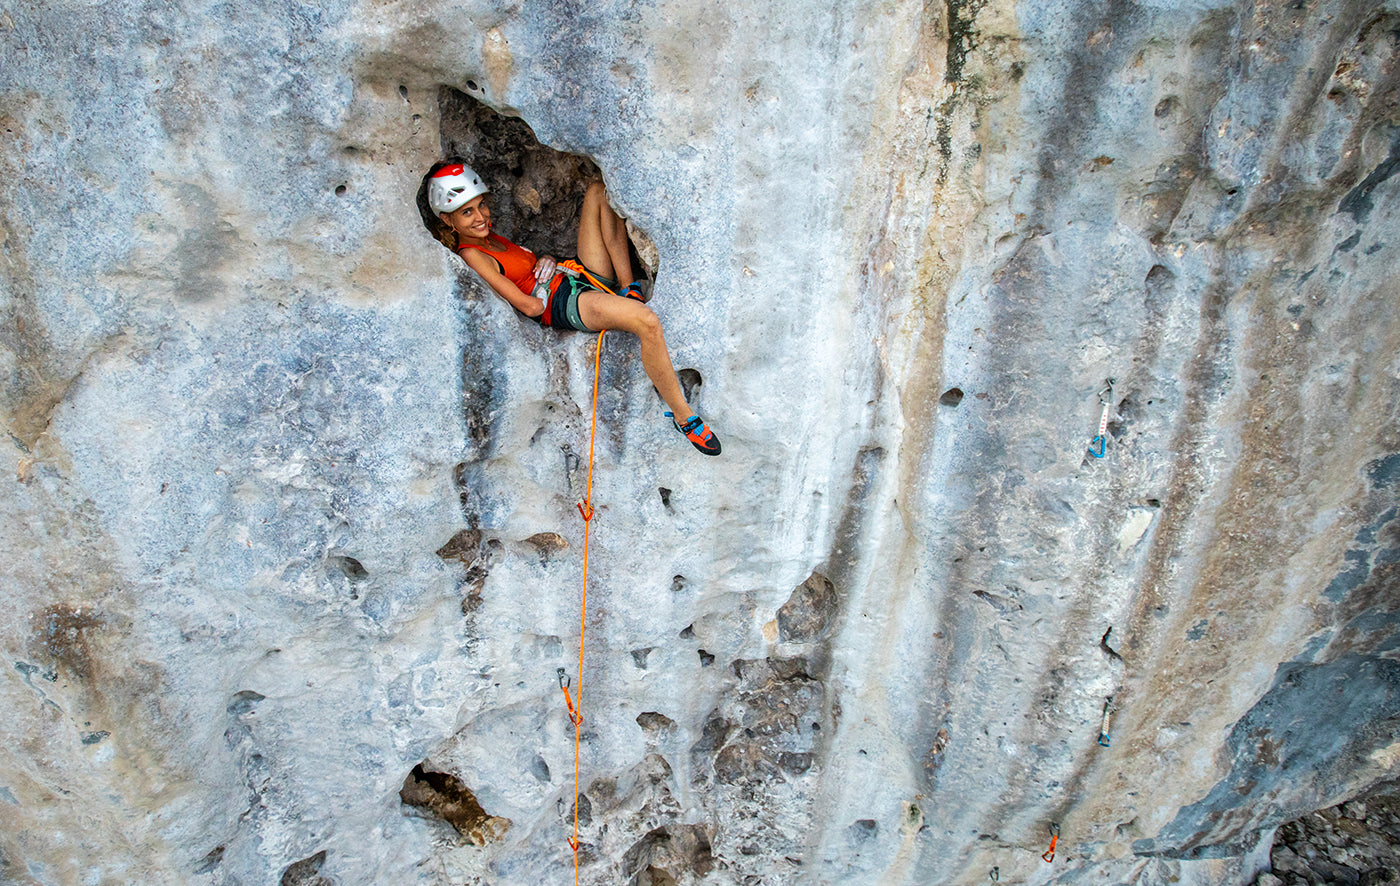 Cliffhanger, published by gestalten. Photo: Guillaume Broust, Bourg Saint Maurice